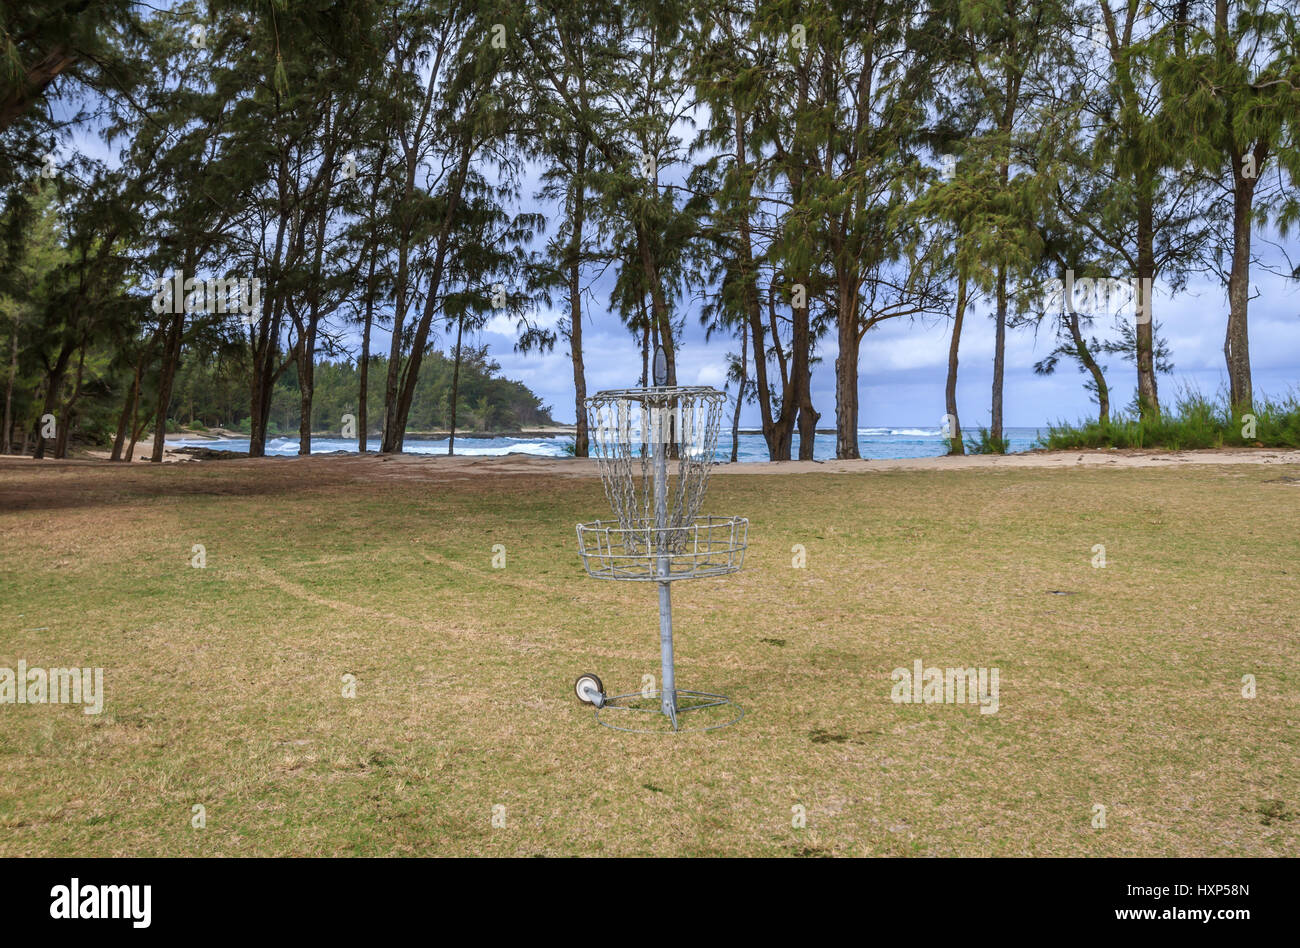 Disk golf course at the on the beach at the Turtle bay resort on the north shore of Oahu Hawaii - Stock Image